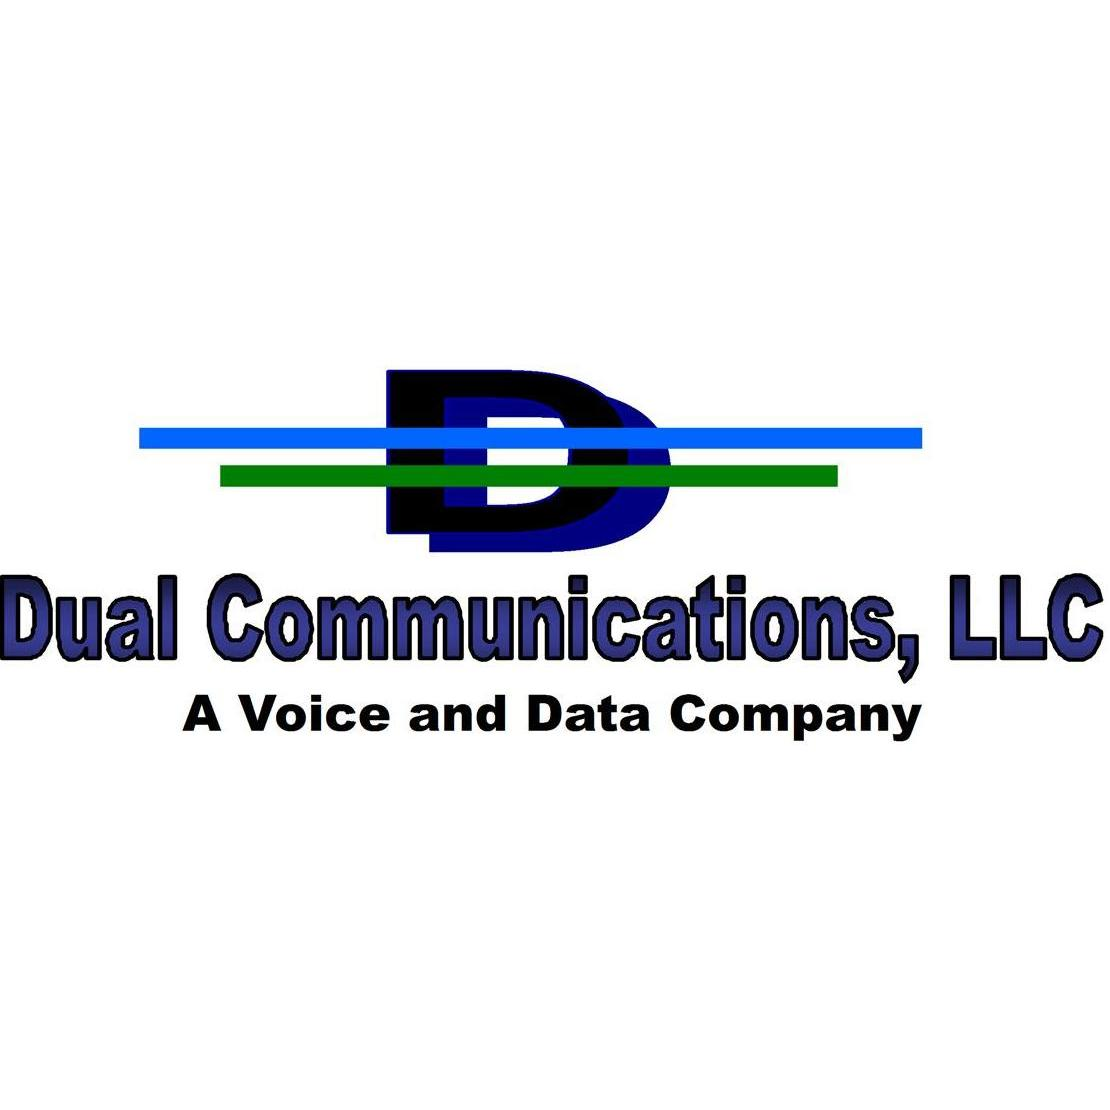 Dual Communications, LLC